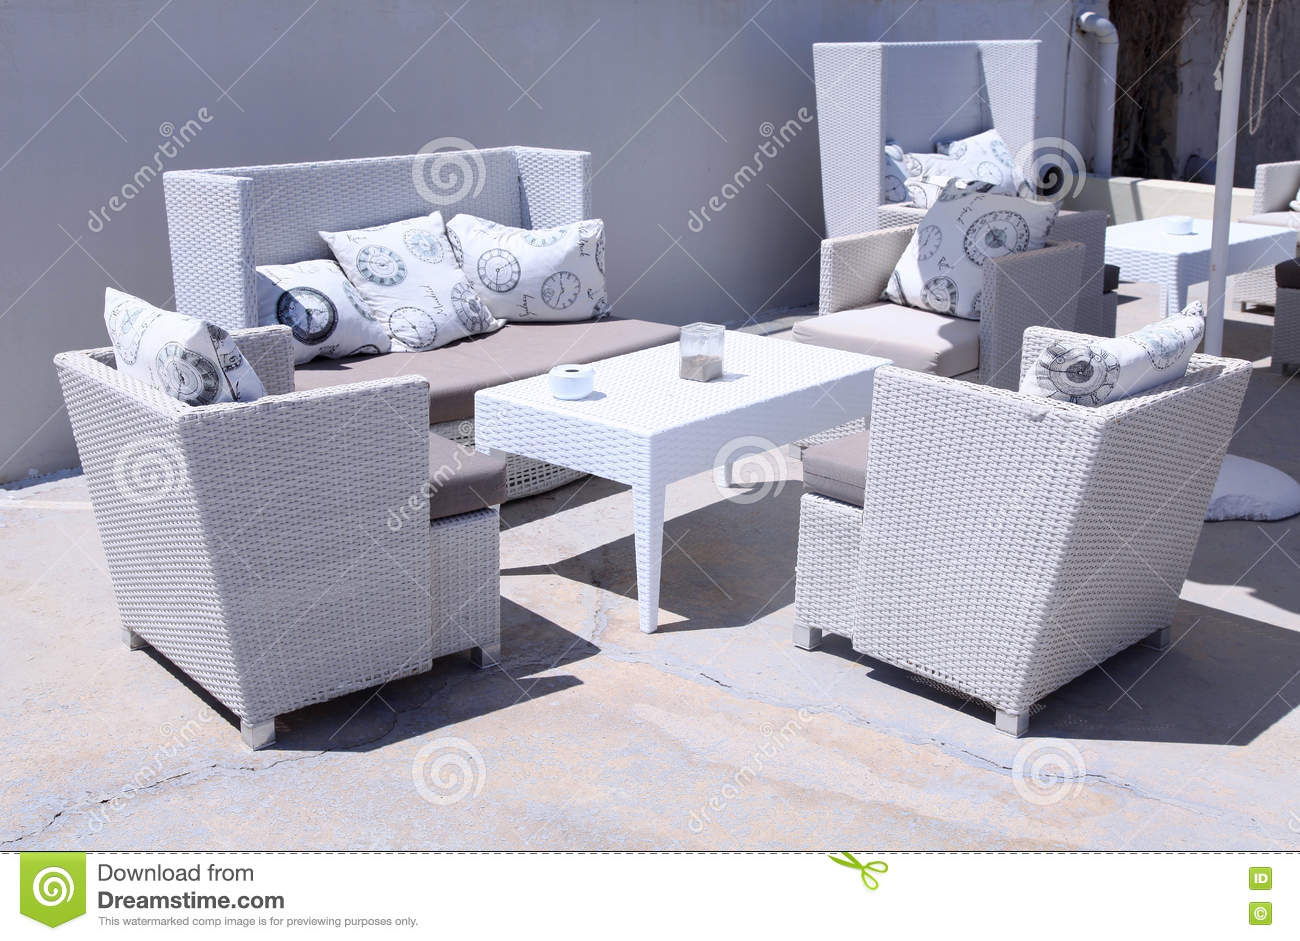 white outdoor furniture rattan armchairs stock image image of hotel balcony 78314021